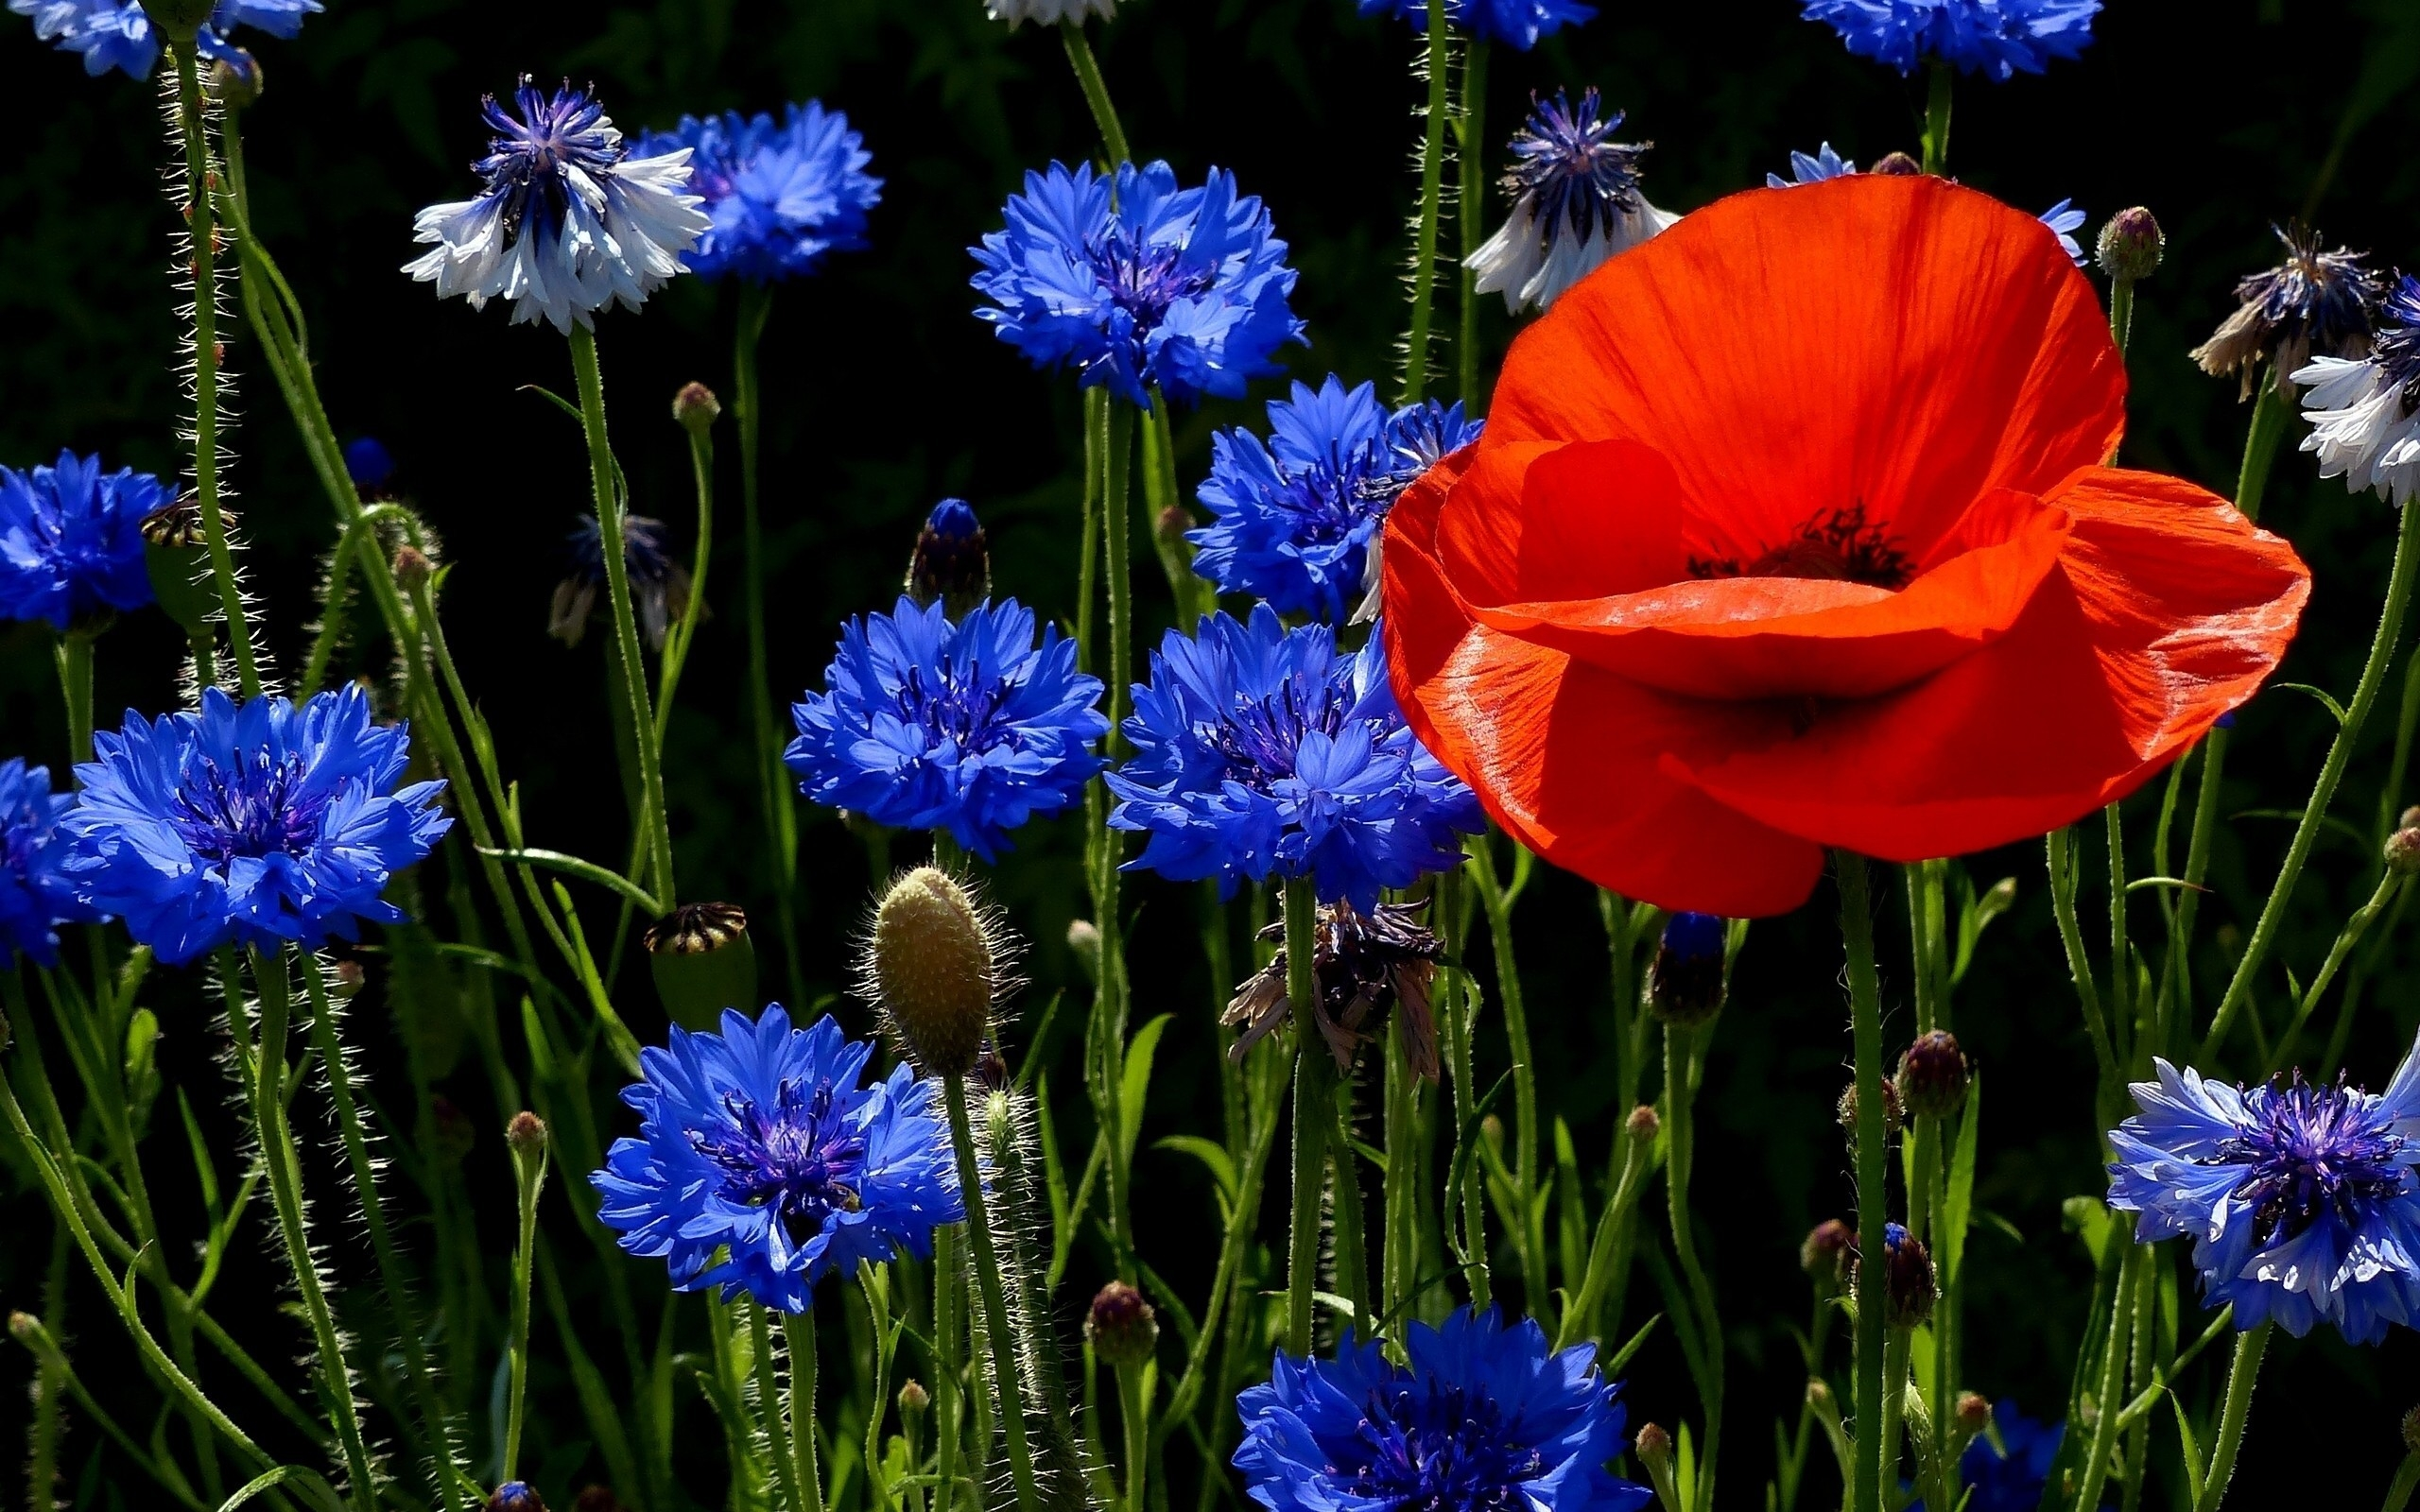 Poppies and Cornflowers for 2560 x 1600 widescreen resolution